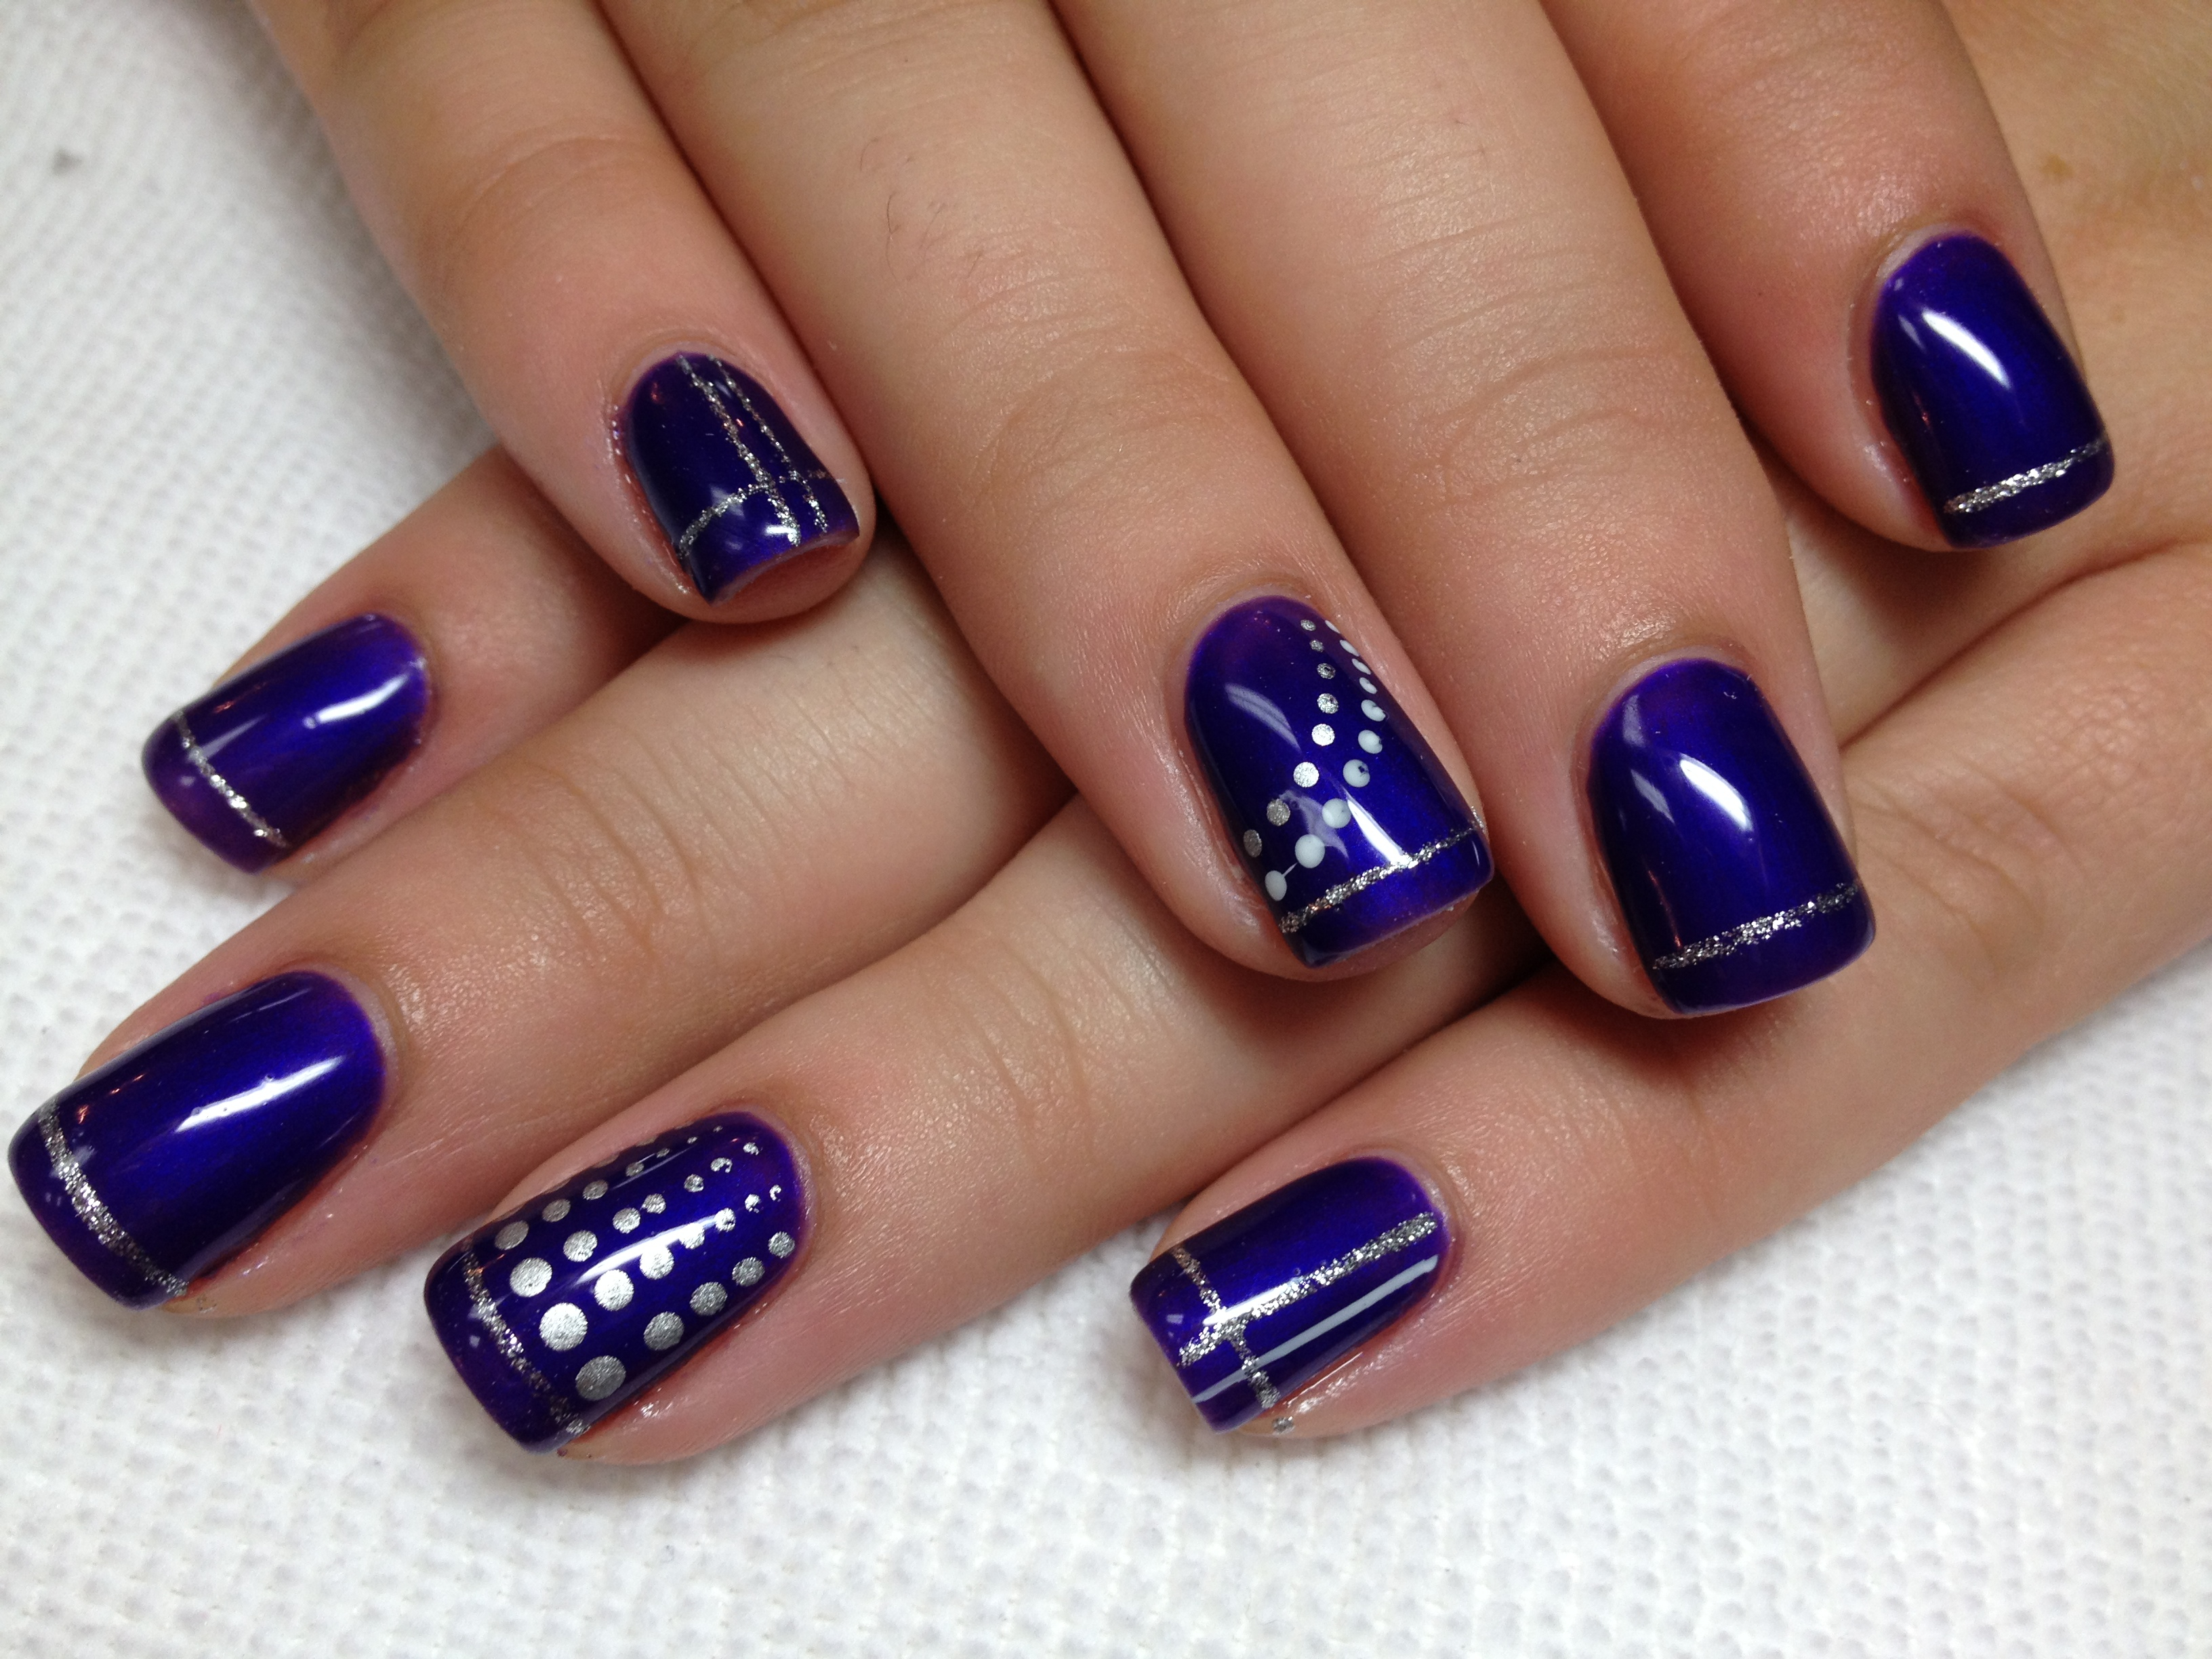 16 Purple And Silver Nail Designs Images - Purple Glitter Acrylic ...